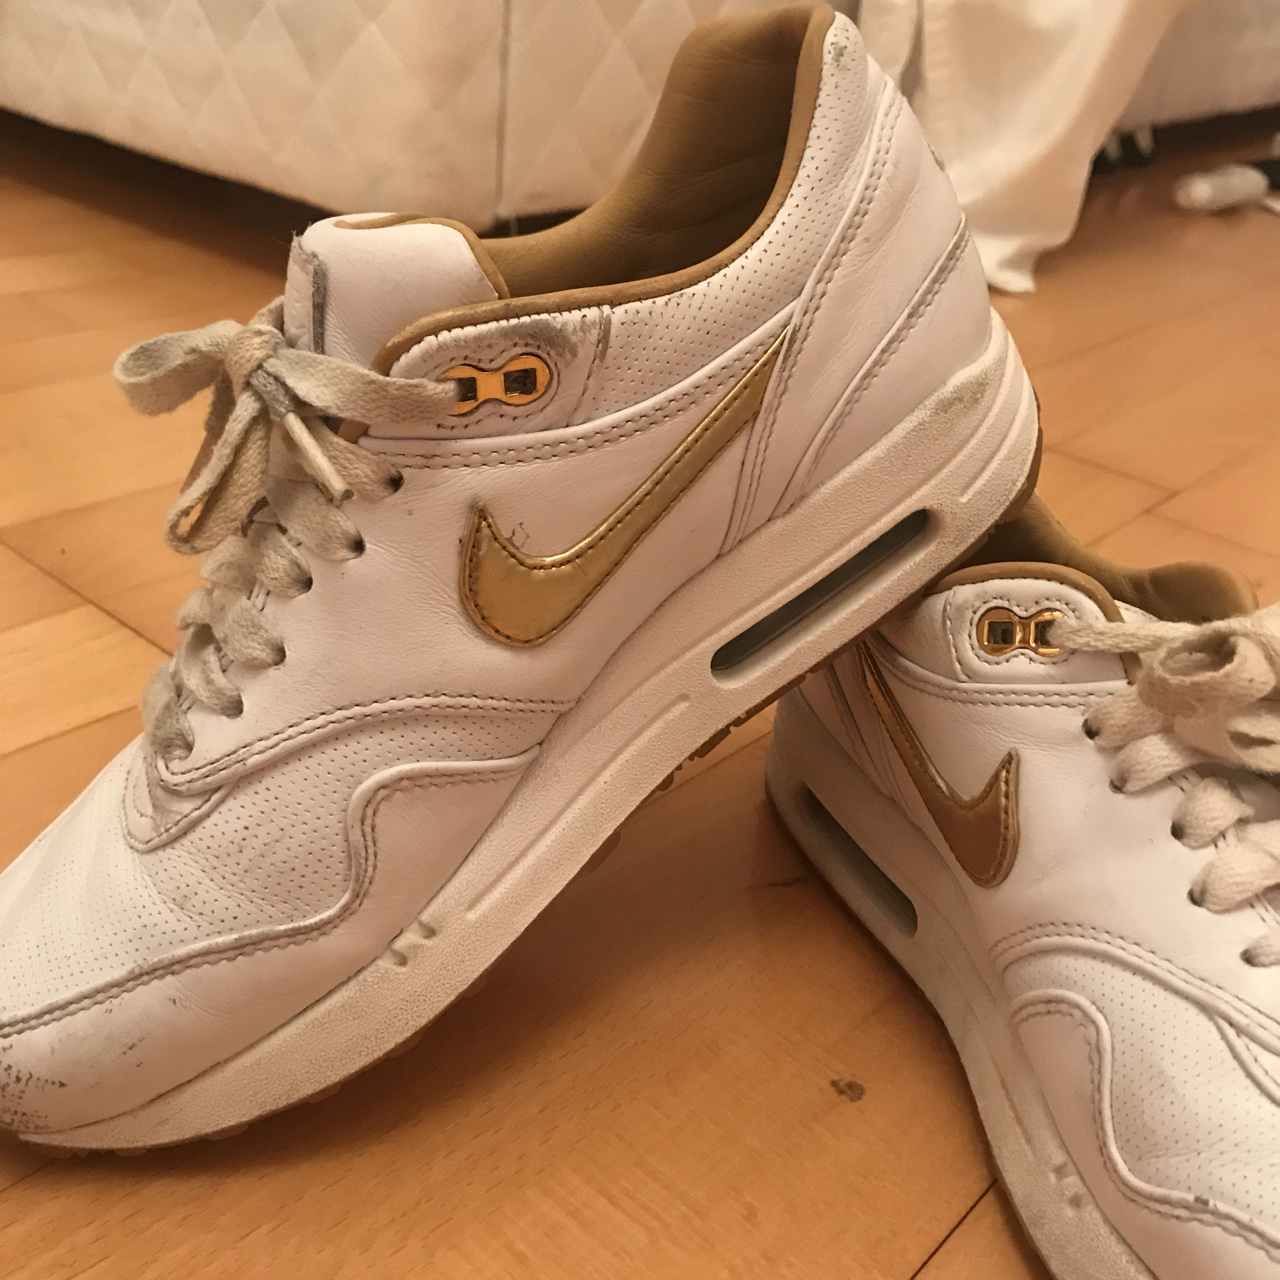 White Nike Air Max 901 limited edition gold Depop